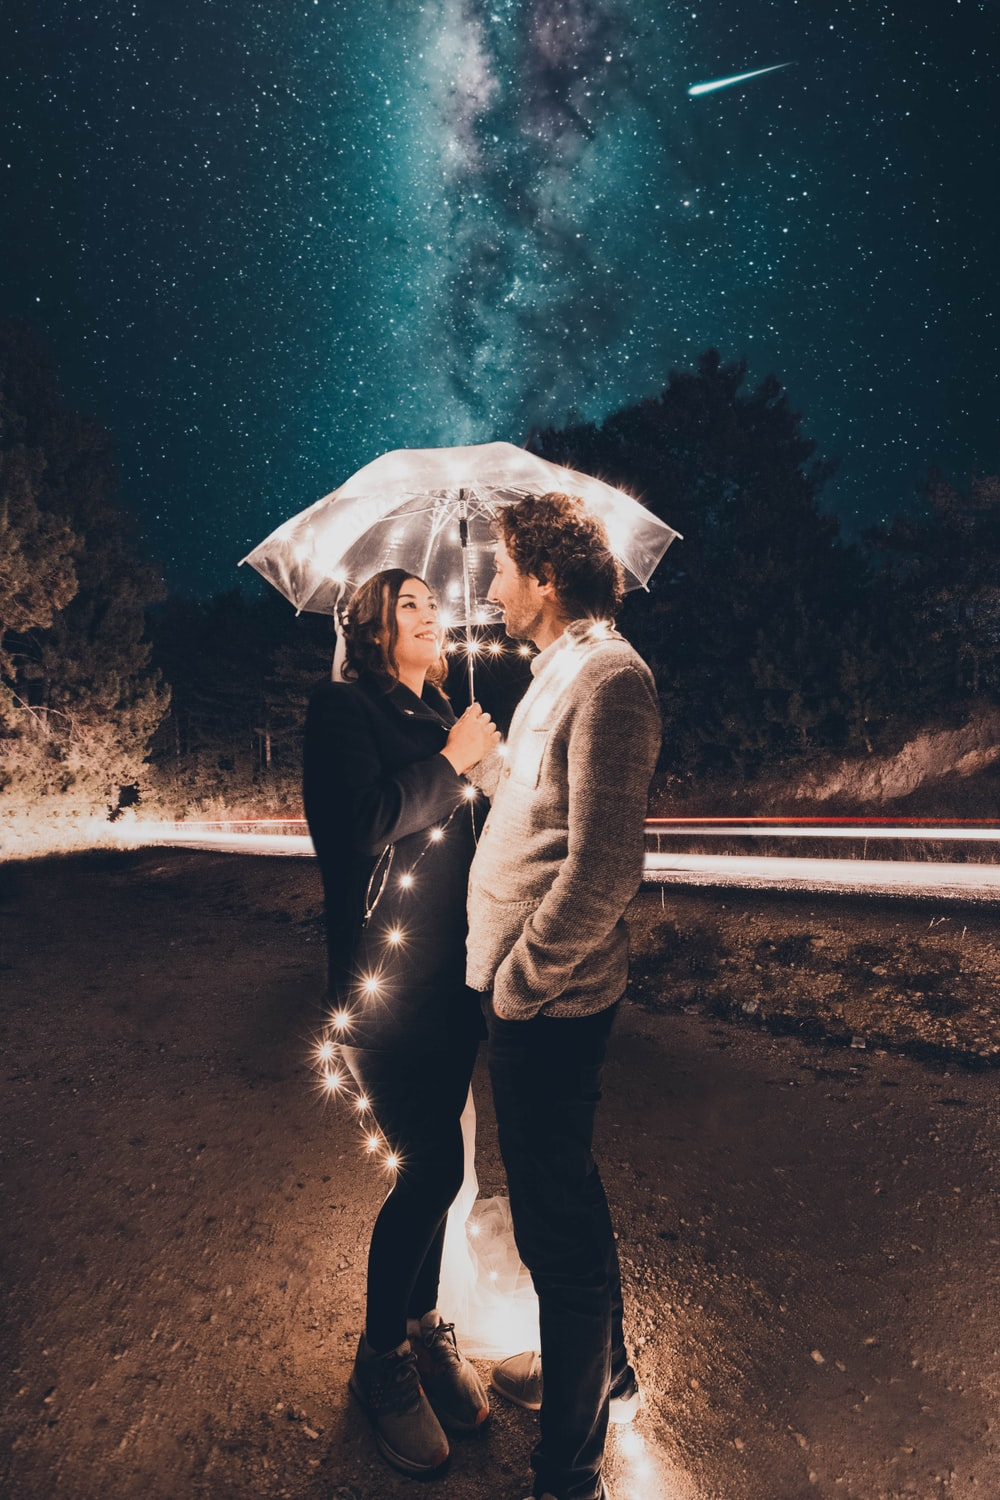 Couple under clear umbrella with string lights during night